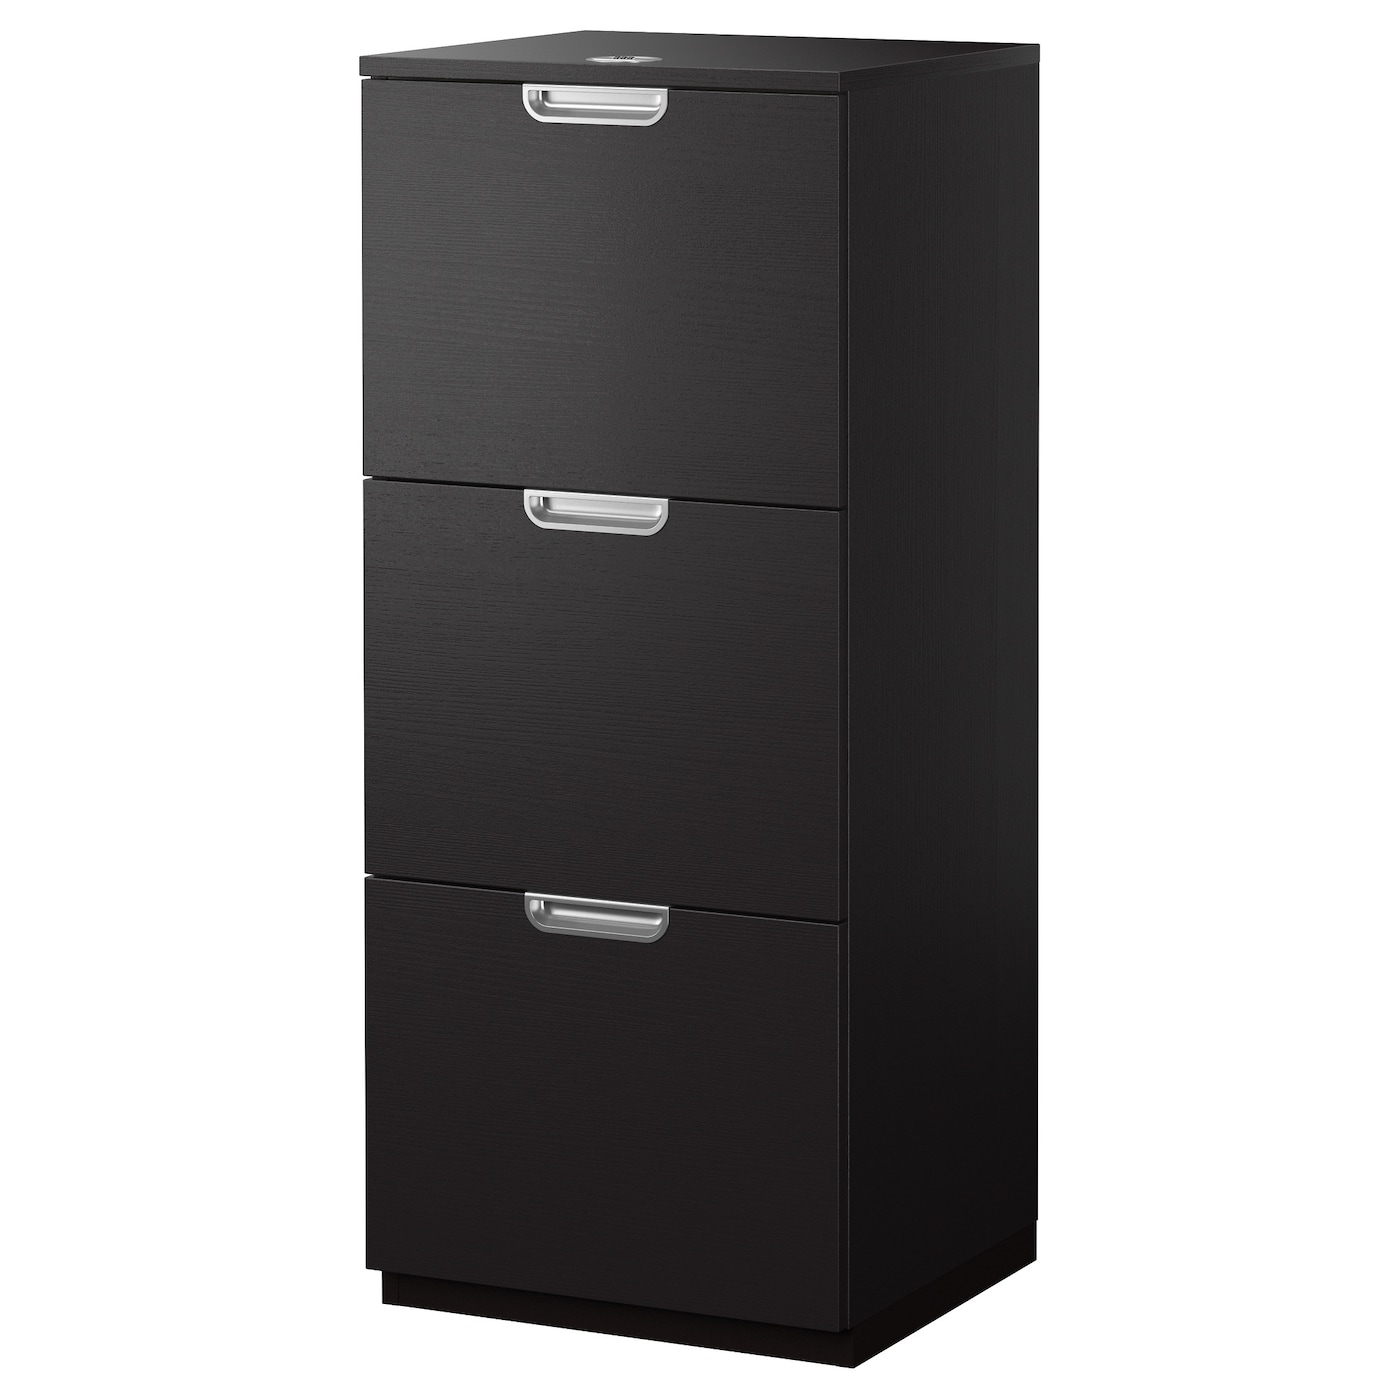 file cabinets with locks galant file cabinet black brown 51 x 120 cm ikea 15380